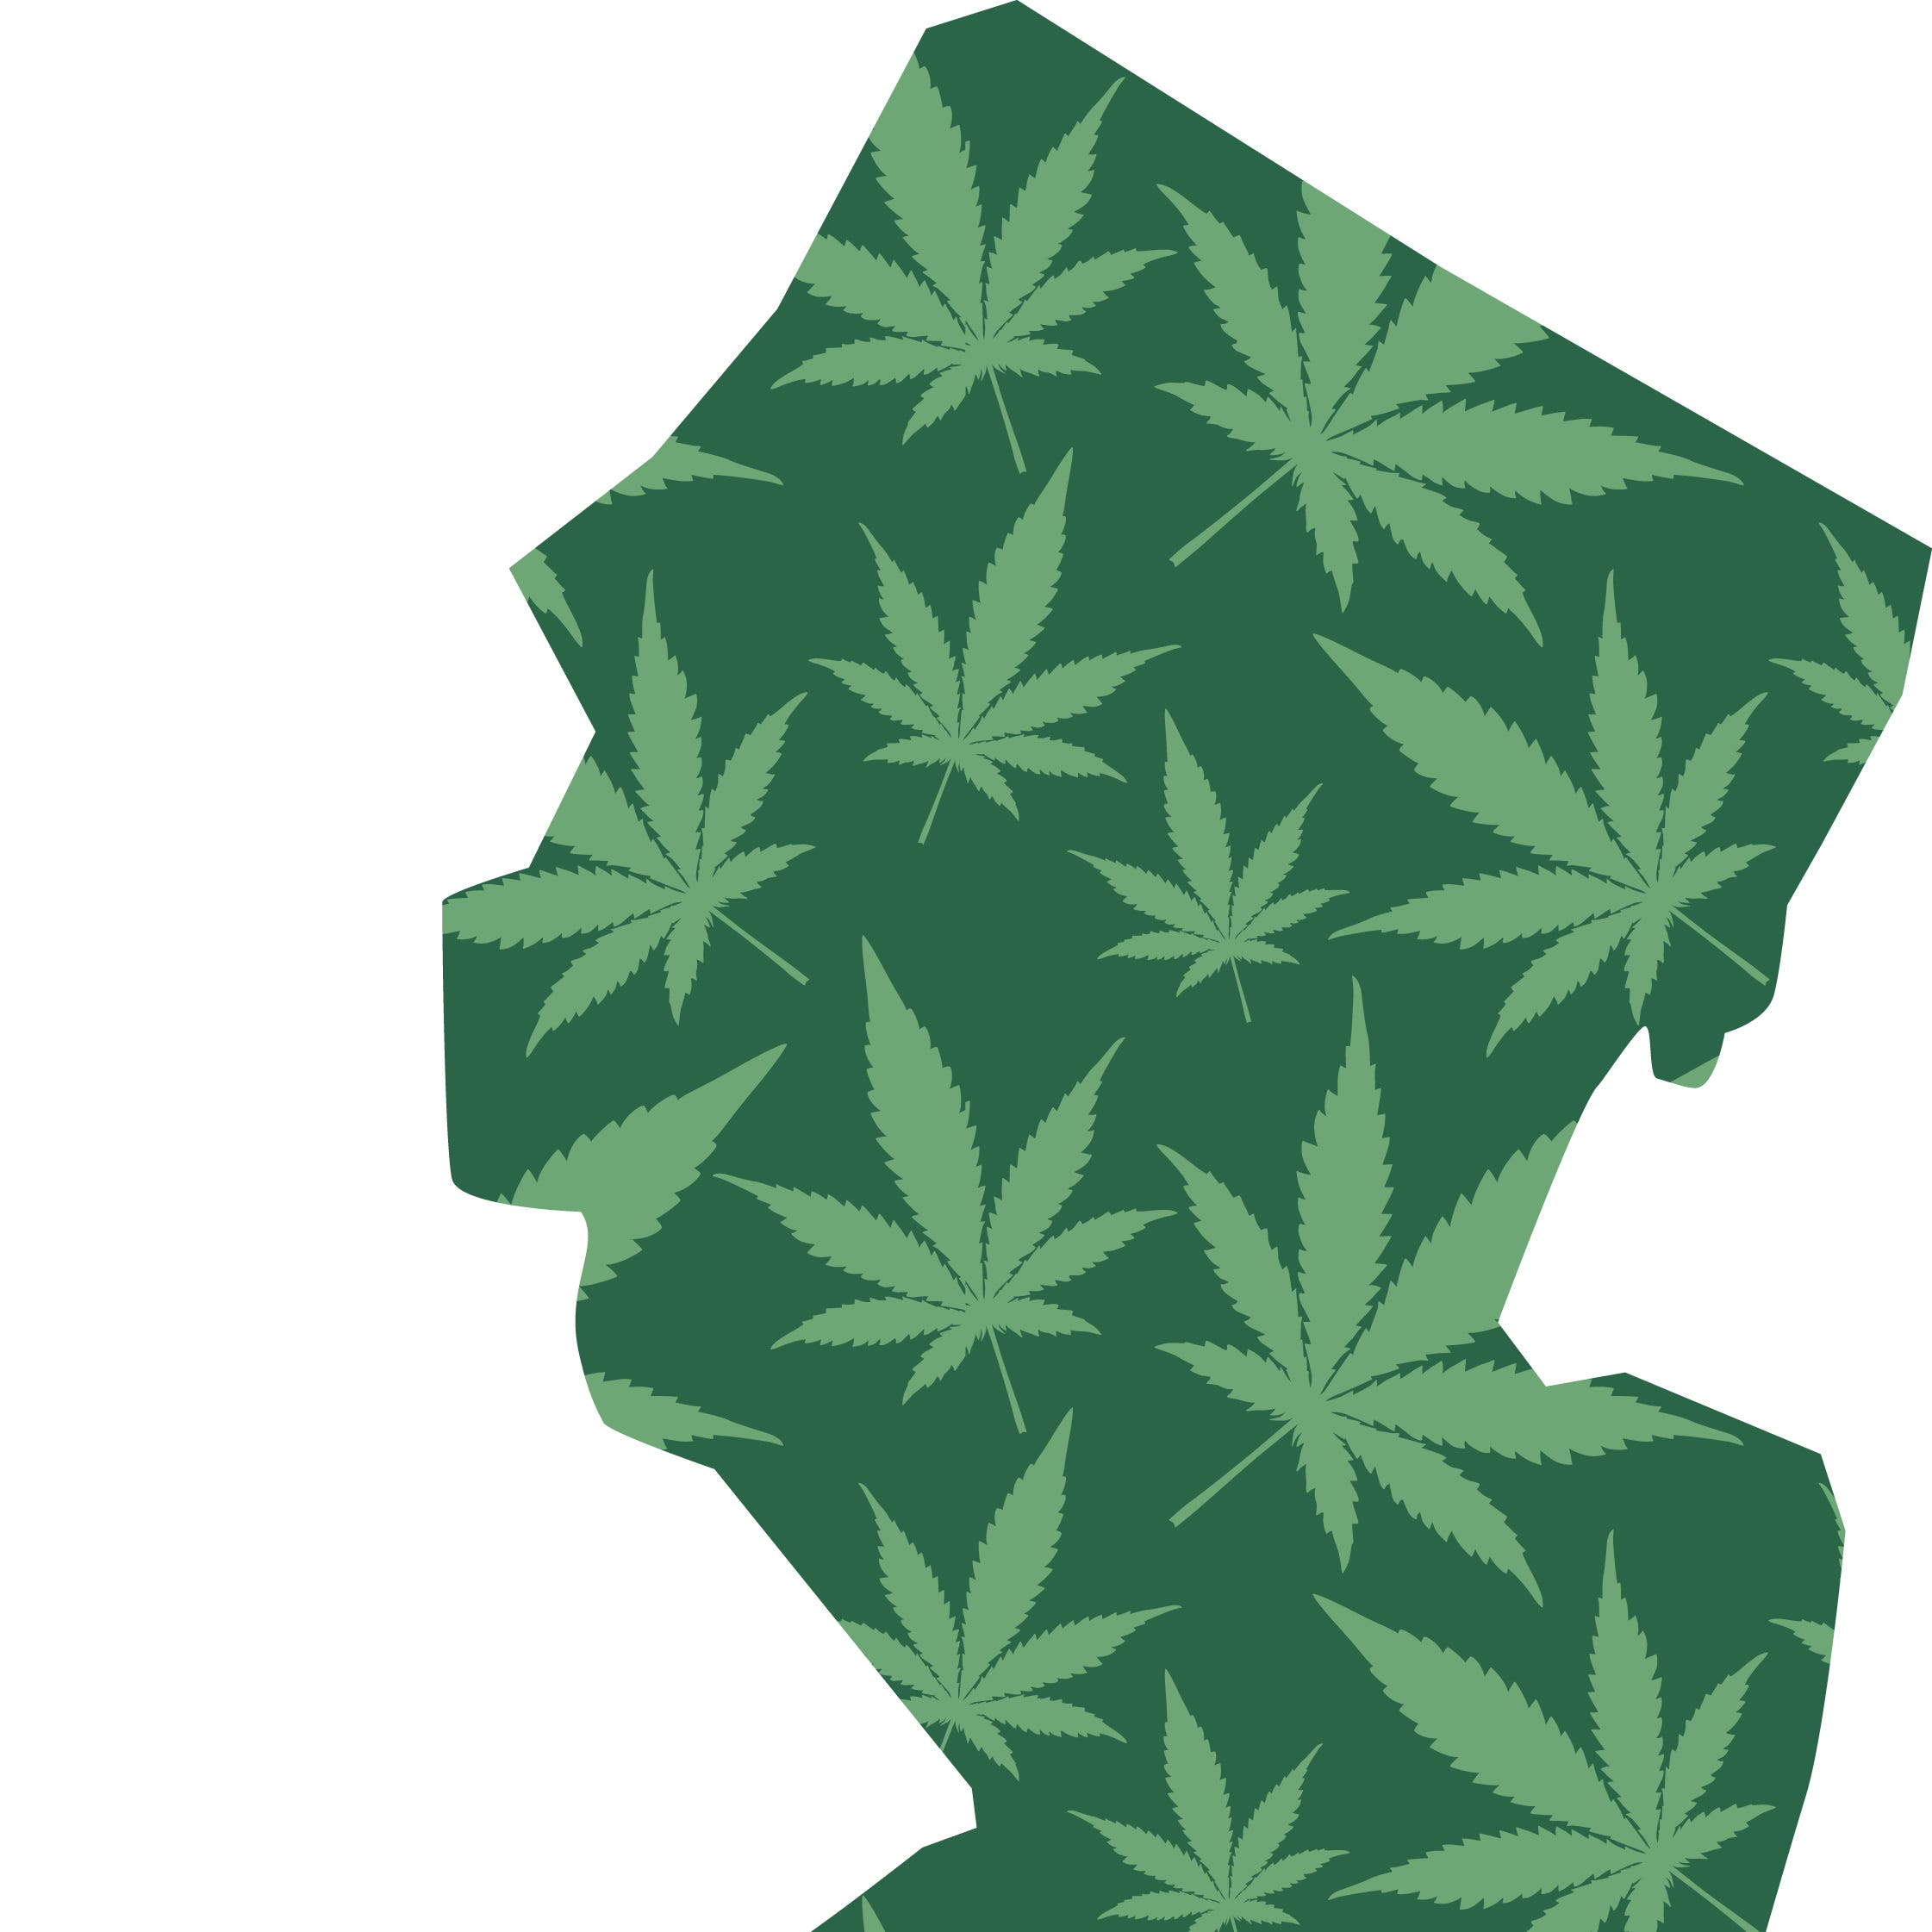 NJ marijuana legalization: How to stop legal marijuana in NJ